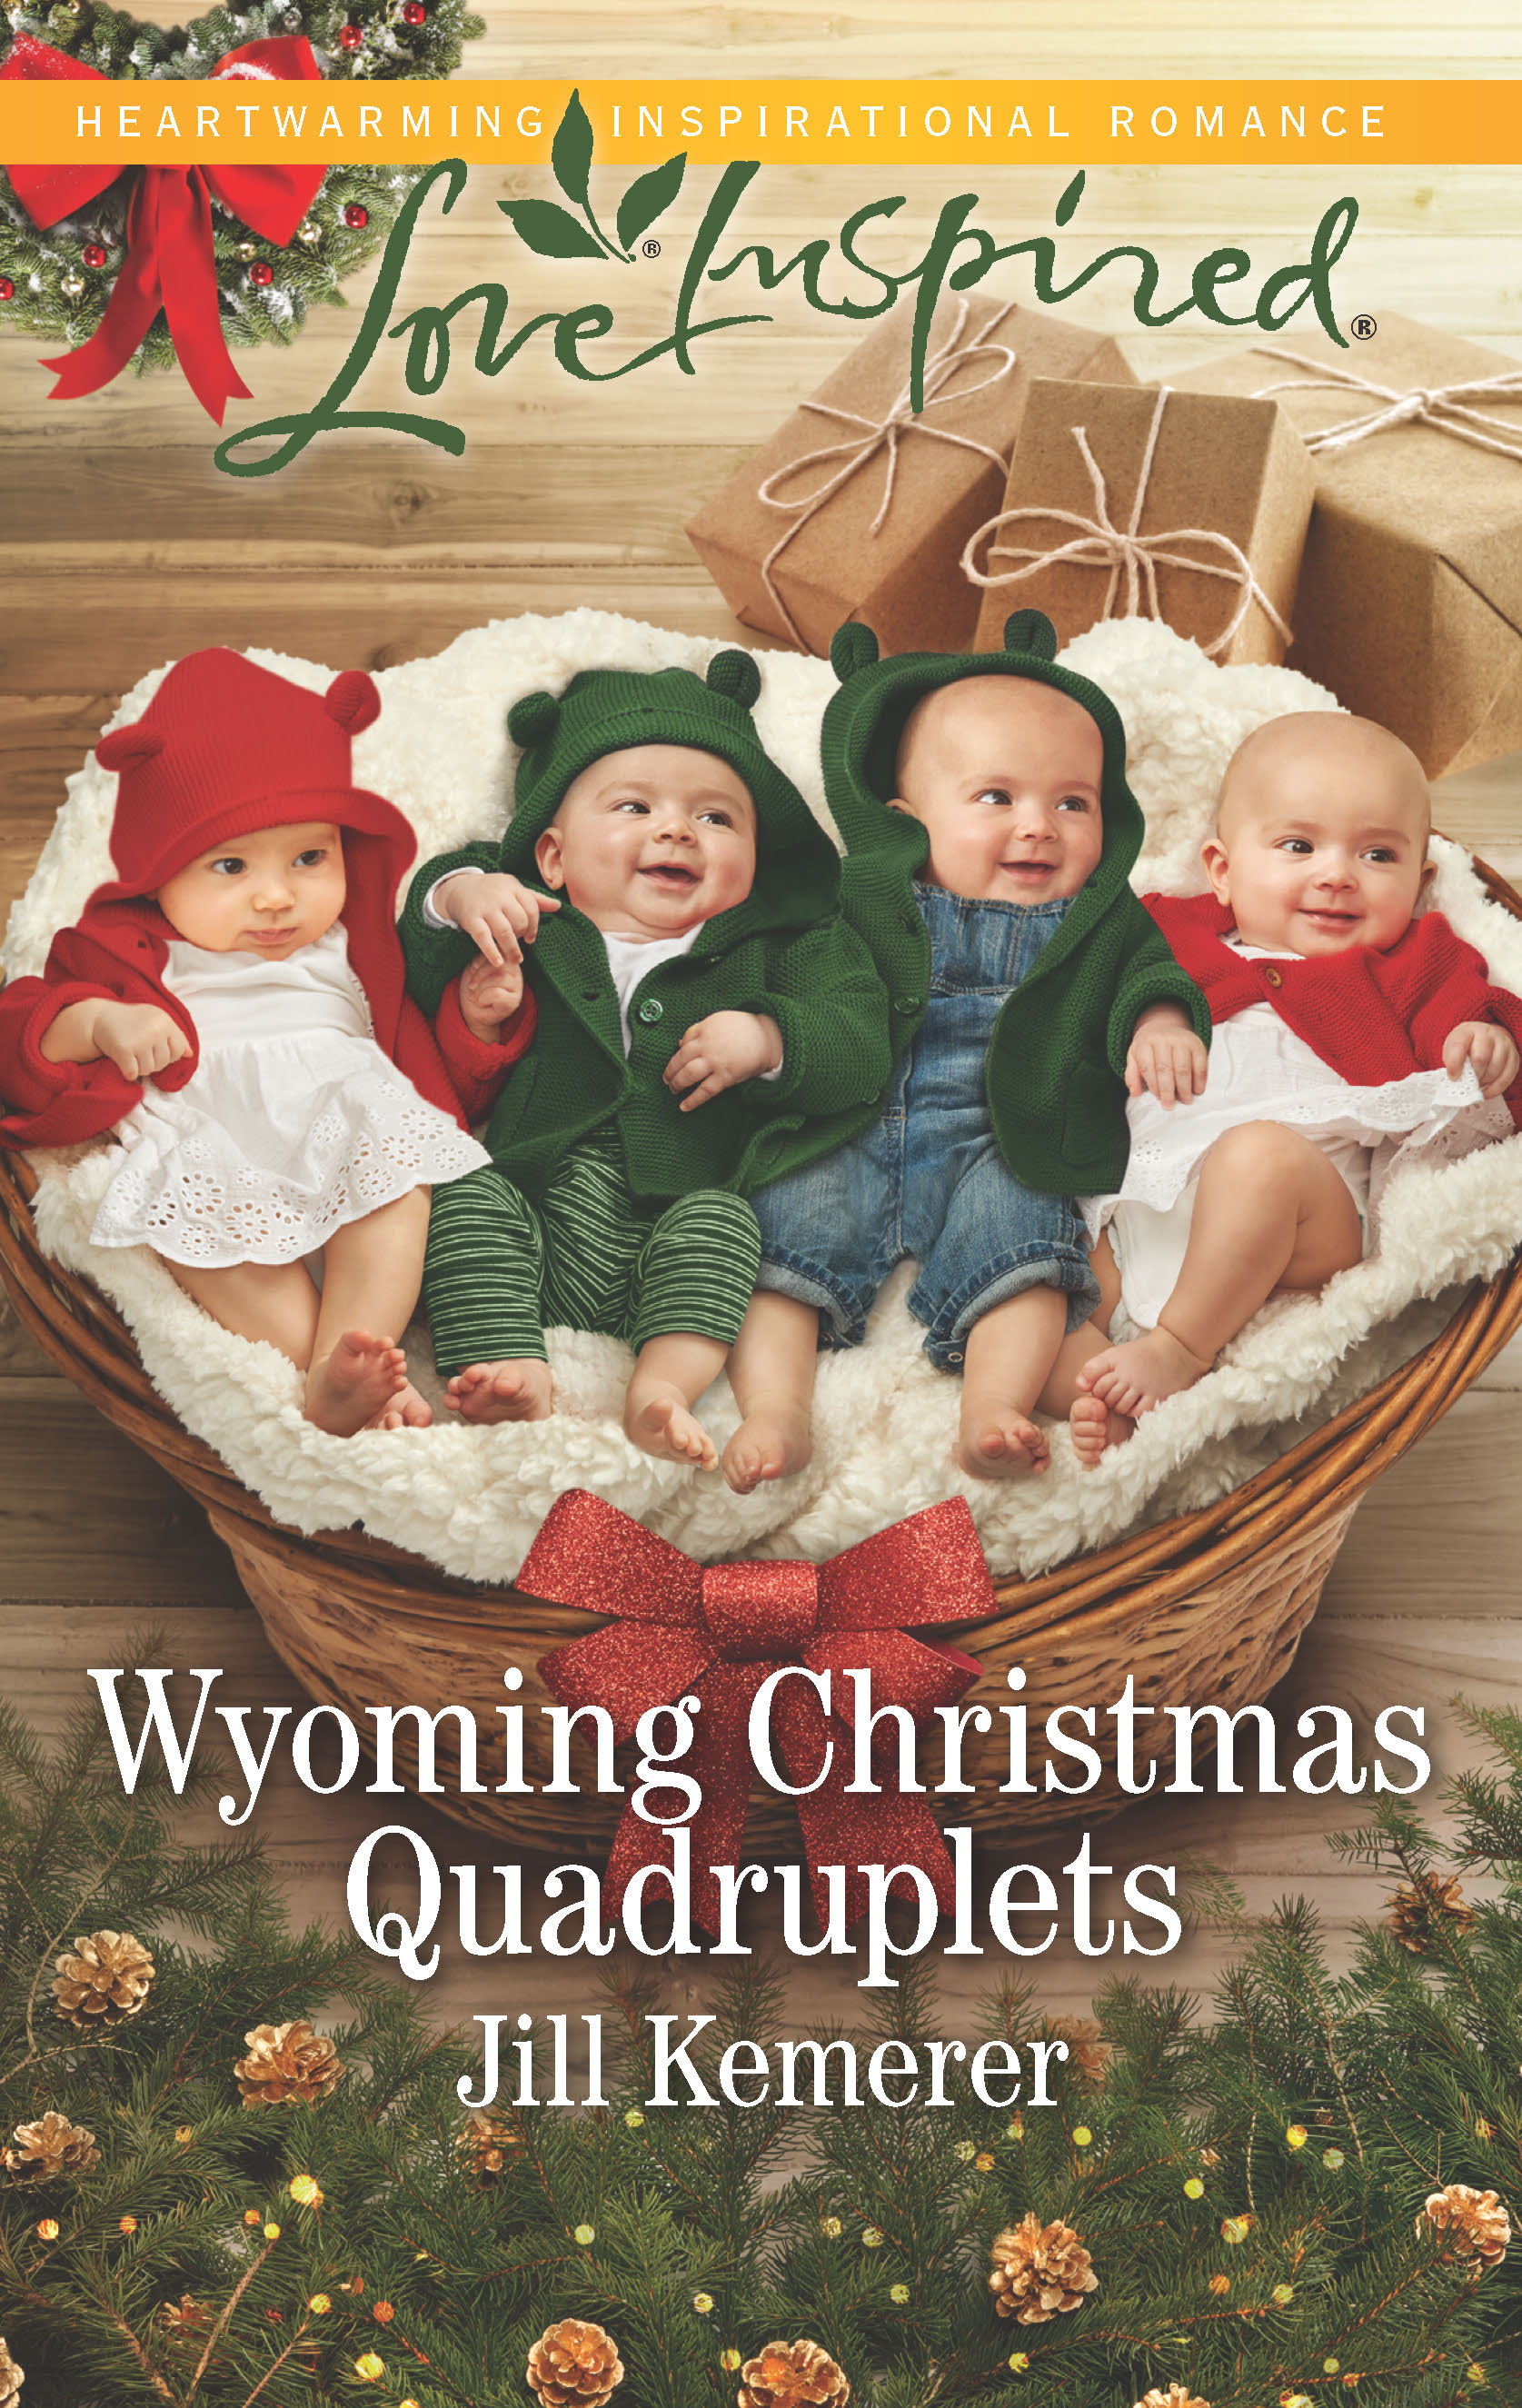 Wyoming Christmas Quadruplets Release!